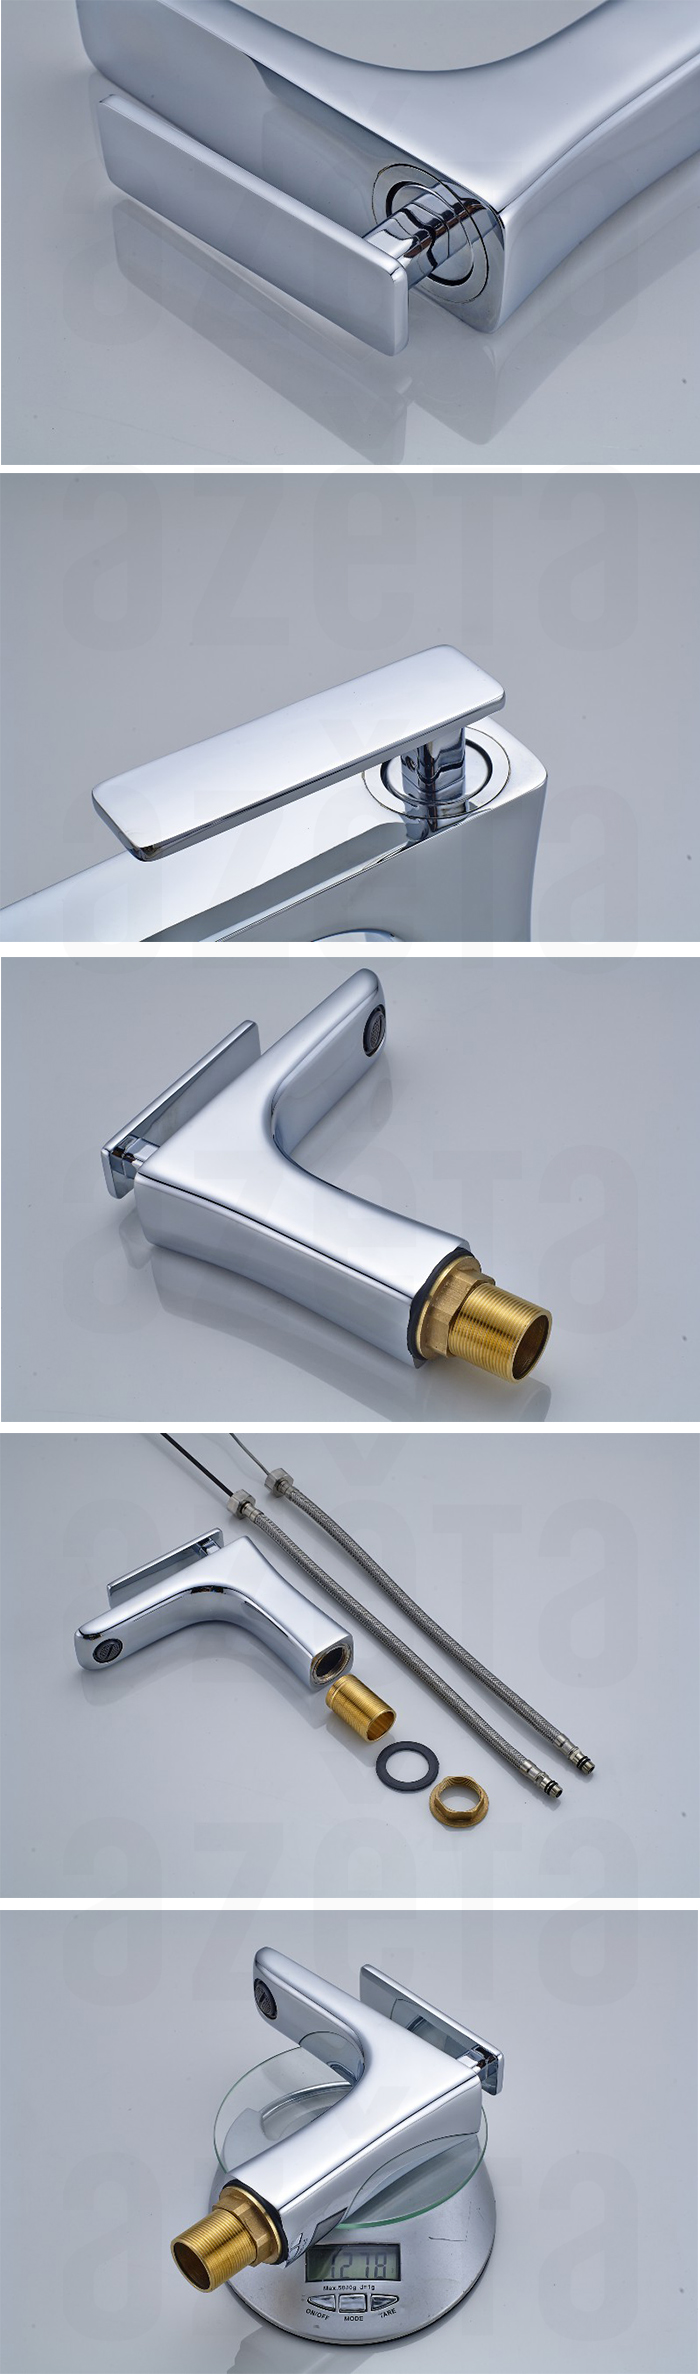 Sanitary Brass Hot Cold Water Saving Wash Basin Water Tap